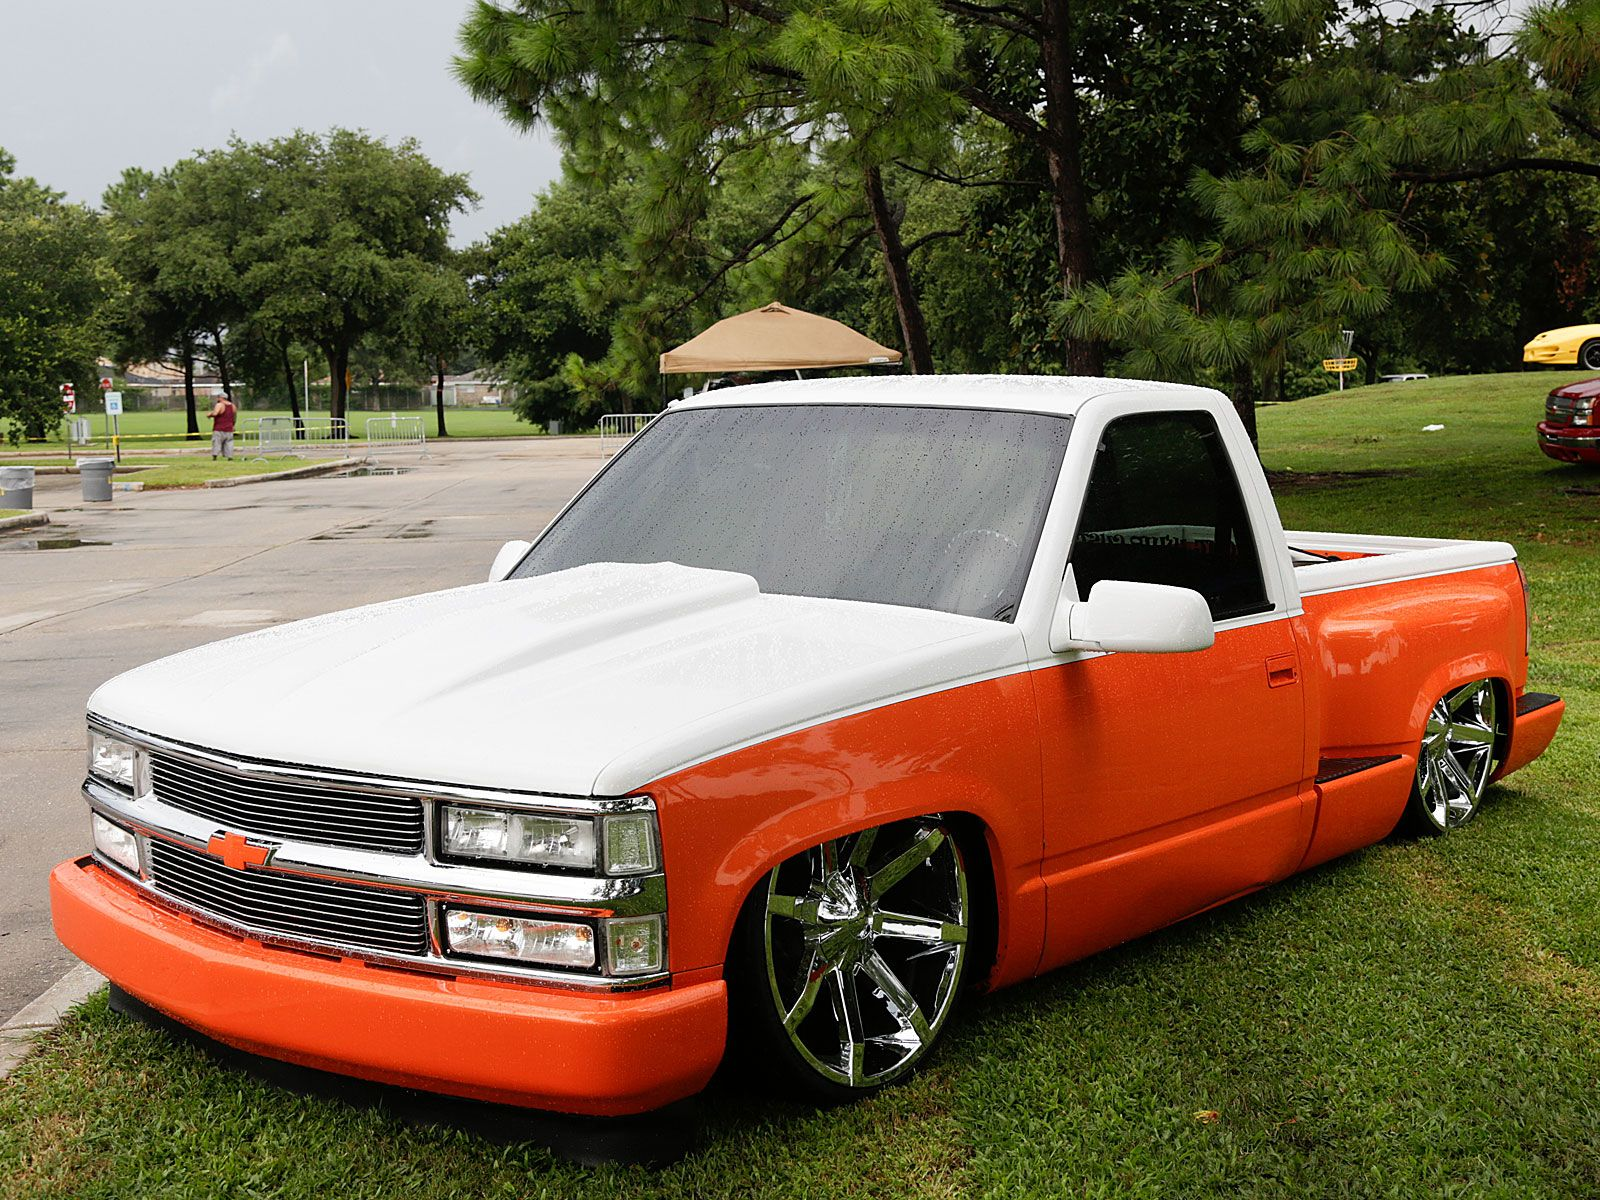 1988 Chevy Pickup Truck Paint Schemes 2008 Ford E350 Trailer Wiring Harness In Addition Bike